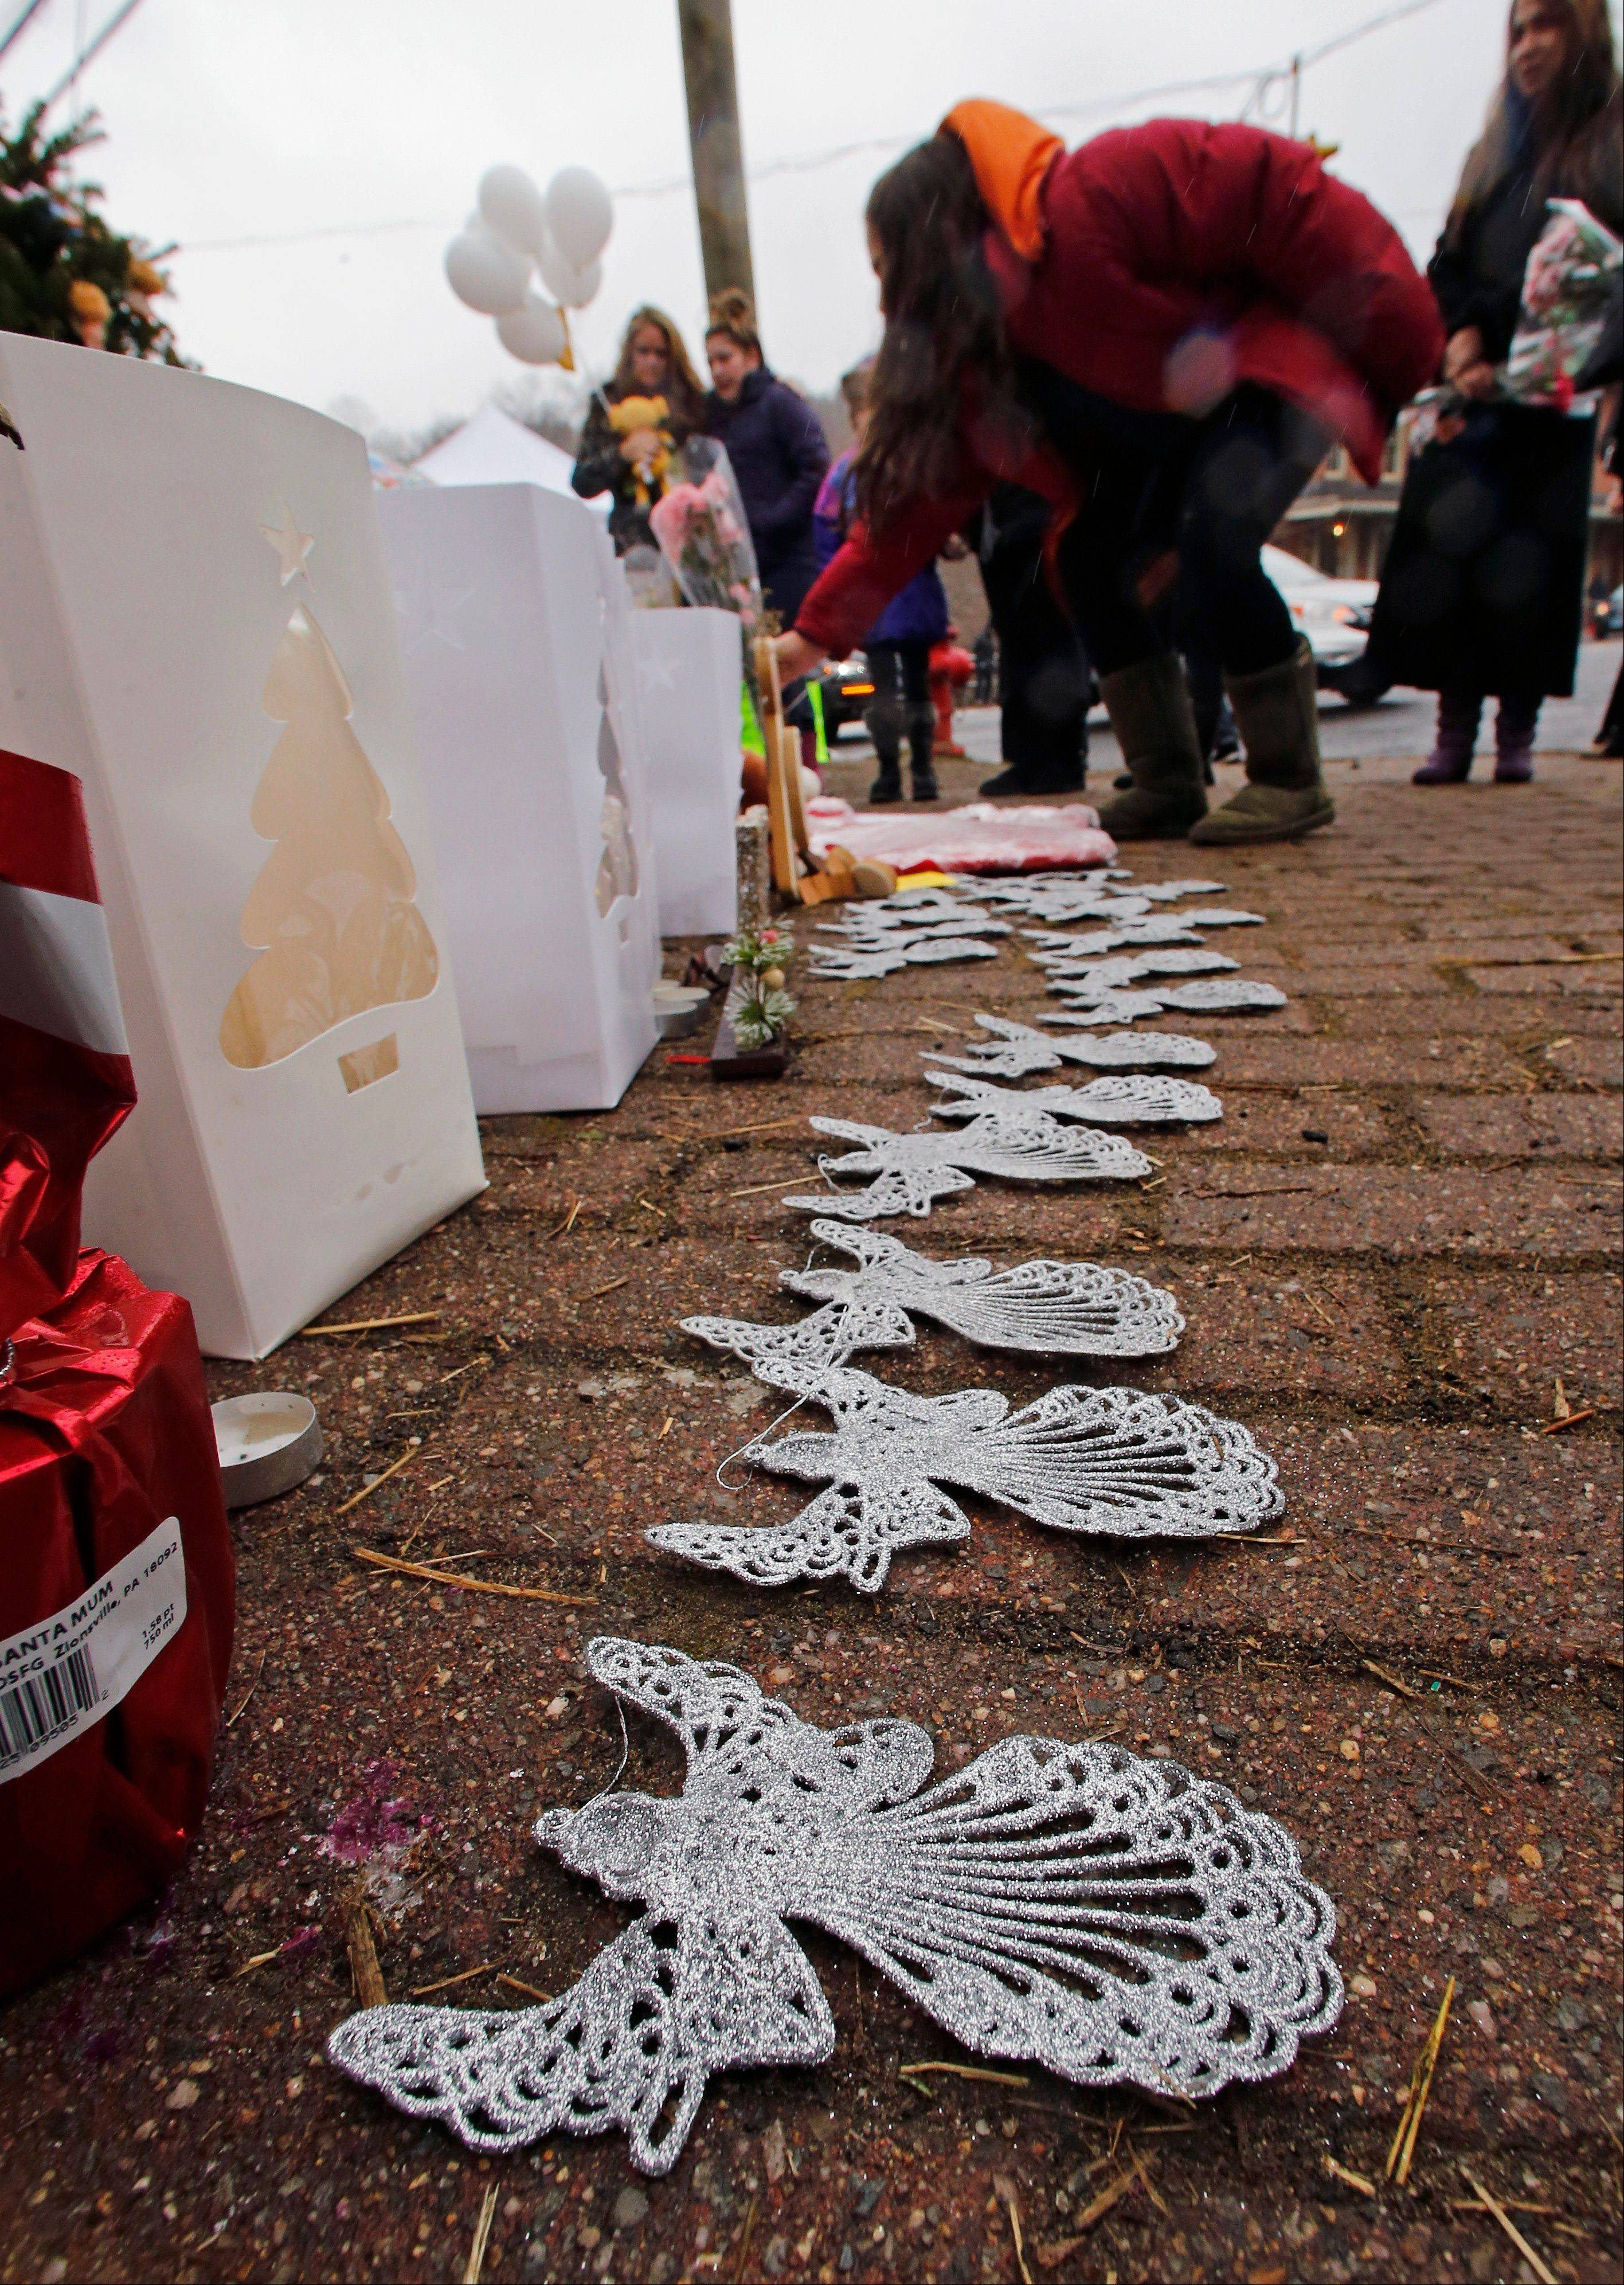 A woman lays flowers at the site of a makeshift memorial for school shooting victims Sunday in the village of Sandy Hook in Newtown, Conn. A gunman opened fire at Sandy Hook Elementary School in the town, killing 26 people, including 20 children before killing himself on Friday.